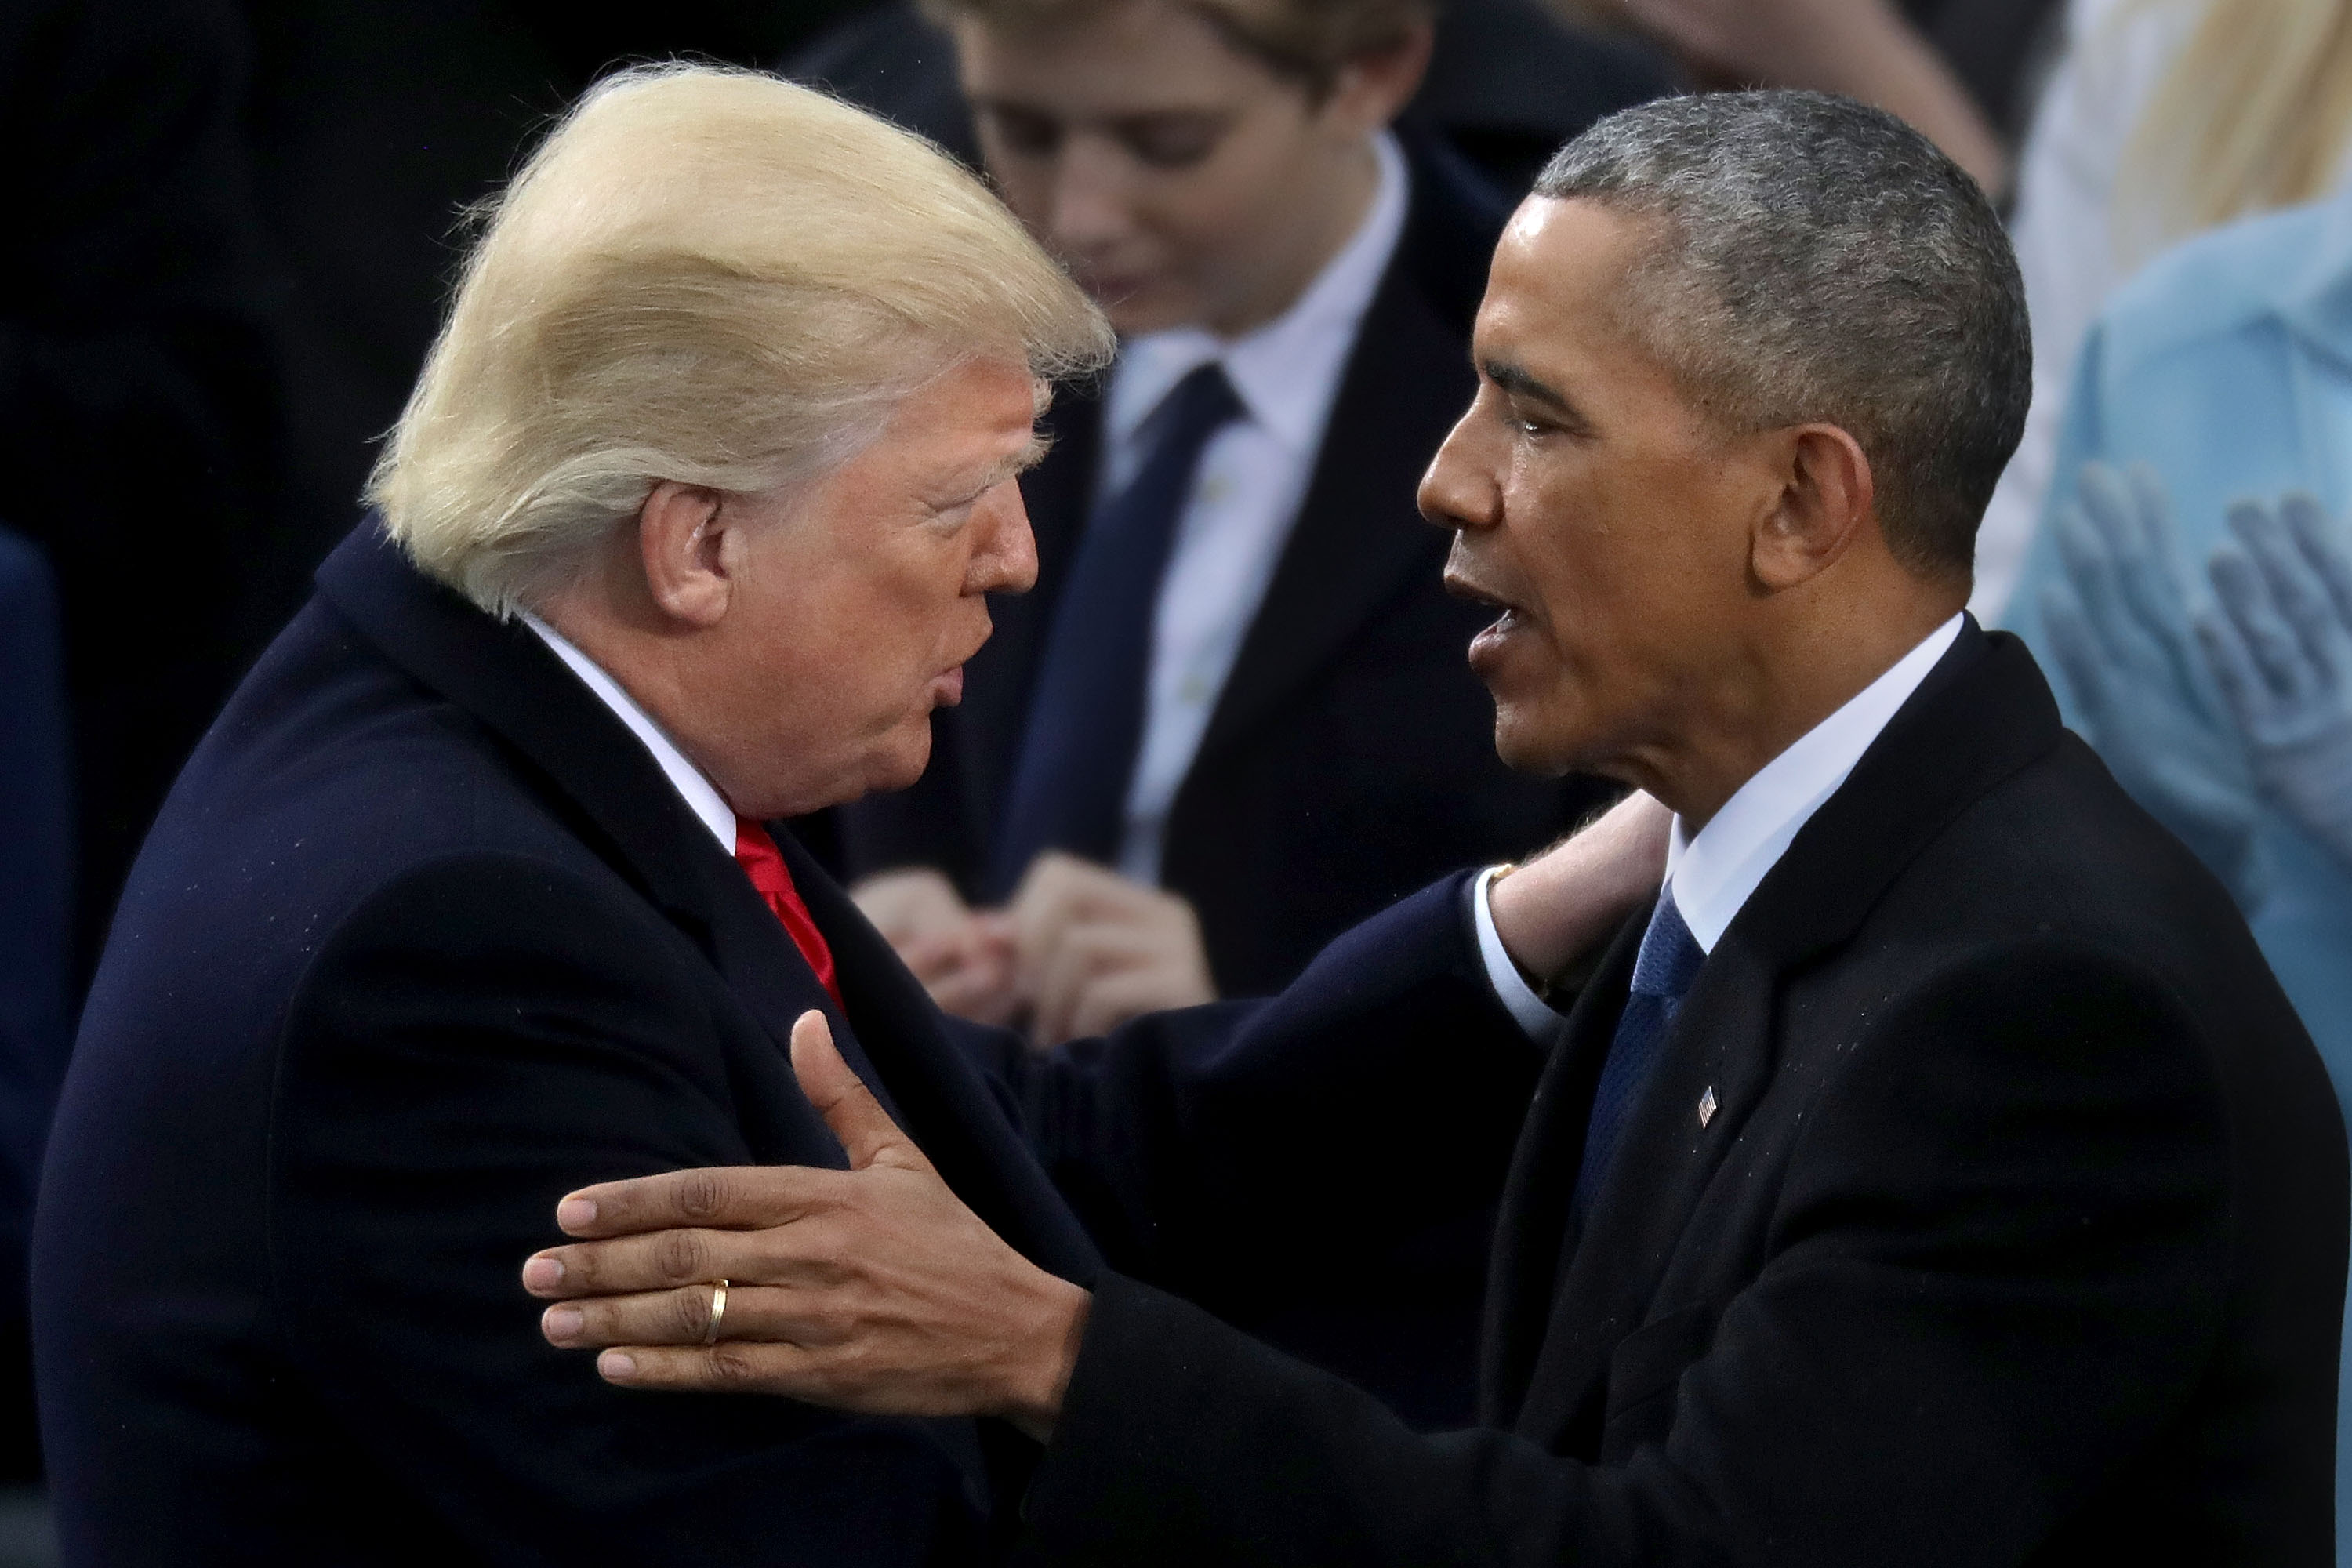 WASHINGTON, DC - JANUARY 20: Former U.S. President Barack Obama (R) congratulates U.S. President Donald Trump after he took the oath of office on the West Front of the U.S. Capitol on January 20, 2017 in Washington, DC. In today's inauguration ceremony Donald J. Trump becomes the 45th president of the United States. (Photo by Chip Somodevilla/Getty Images)